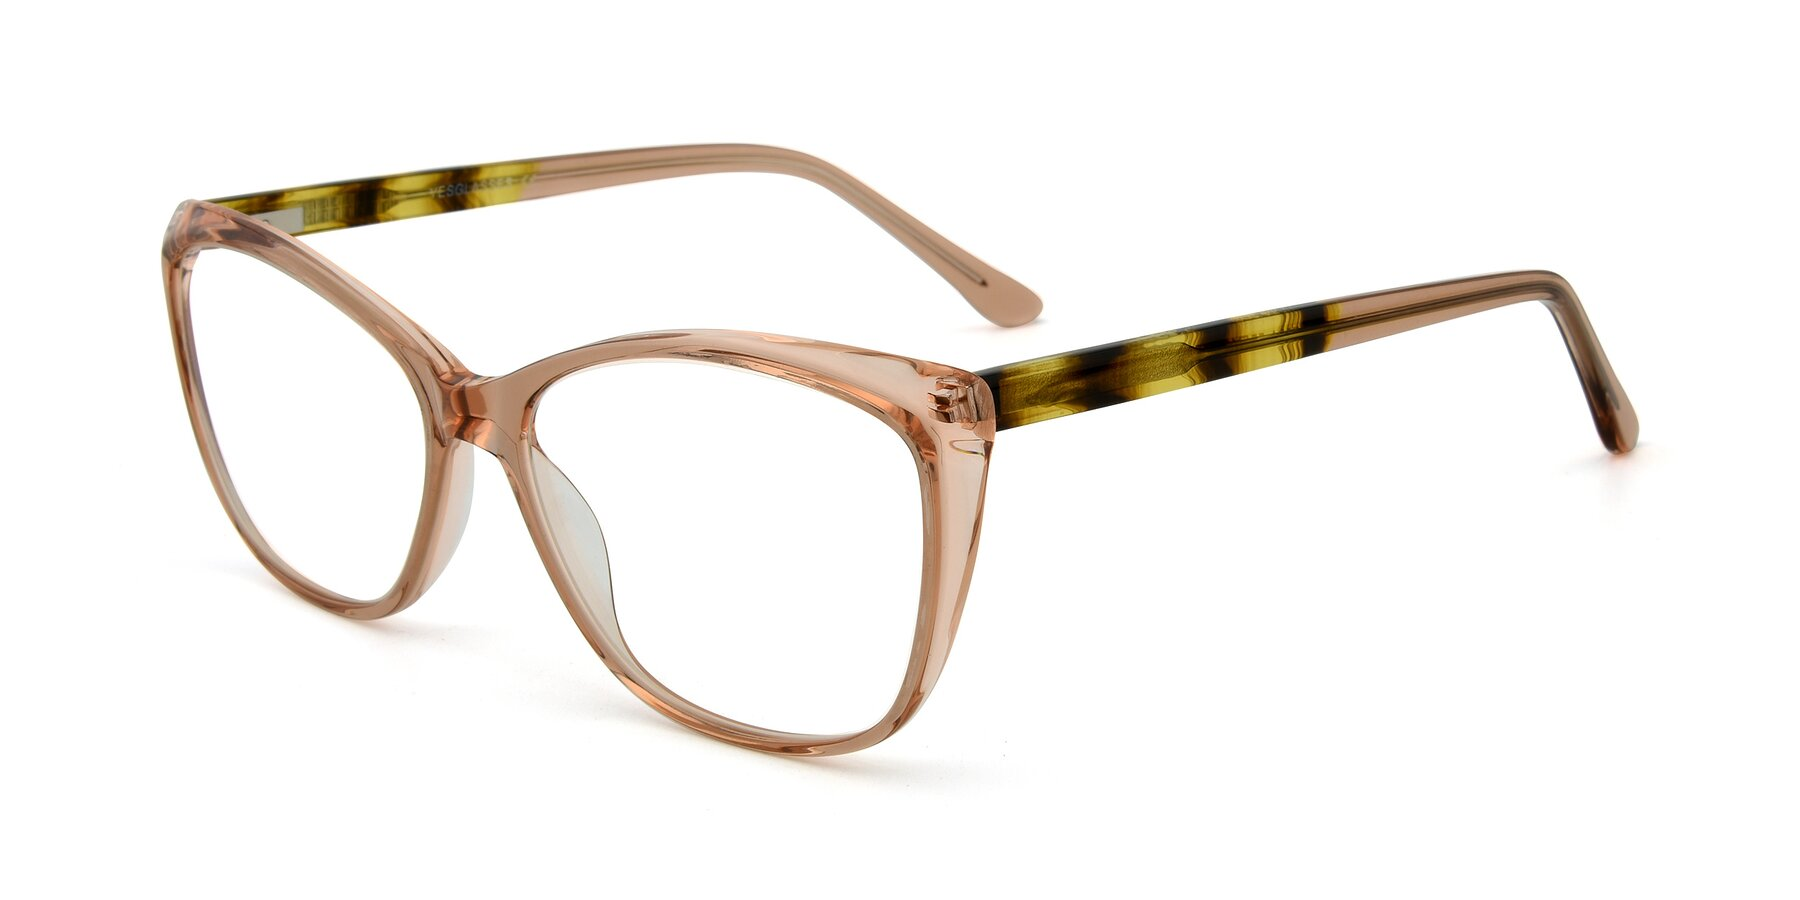 Angle of 17384 in Transparent Caramel with Clear Eyeglass Lenses